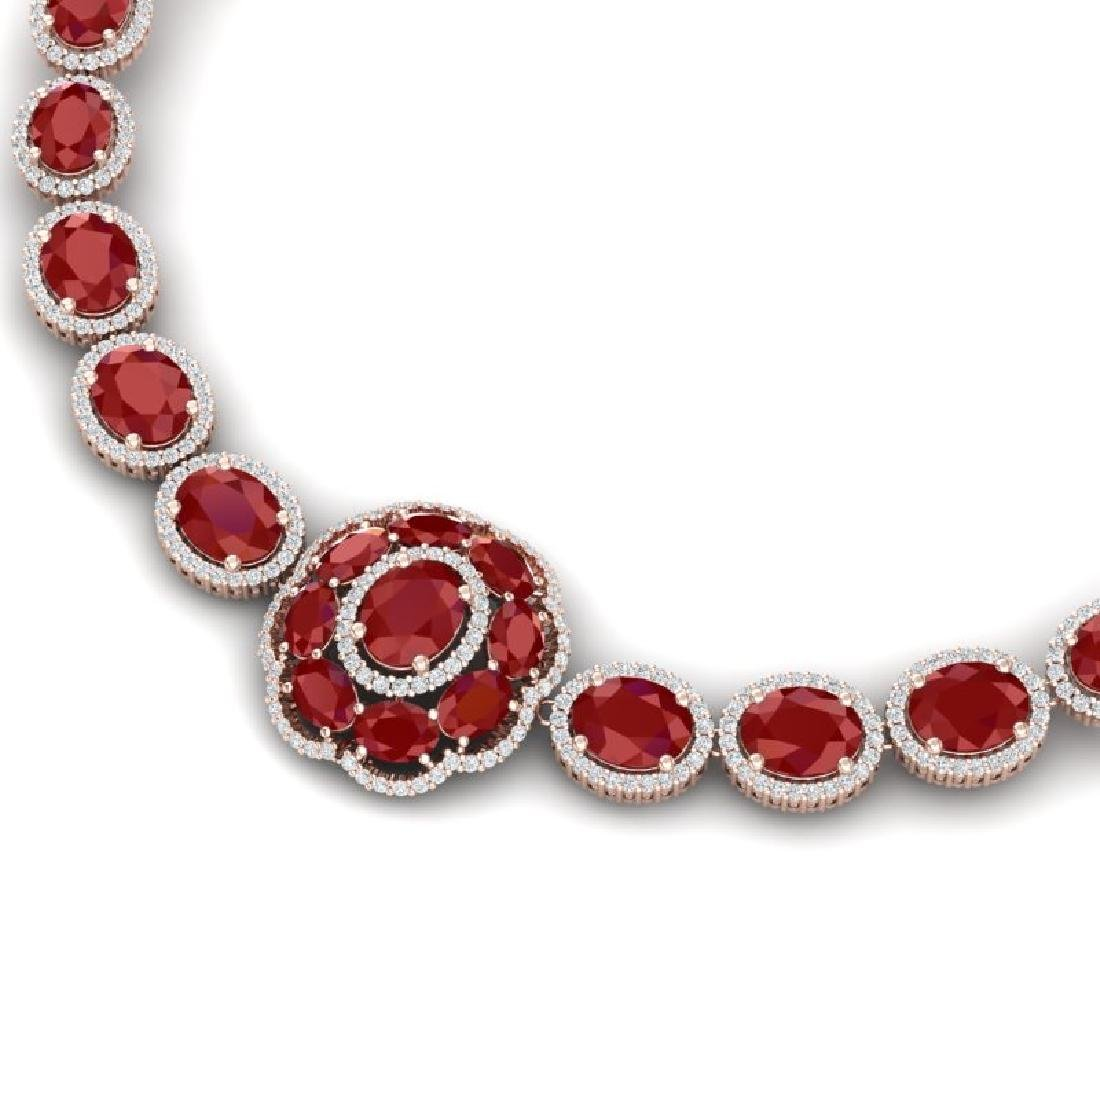 58.33 CTW Royalty Ruby & VS Diamond Necklace 18K Rose